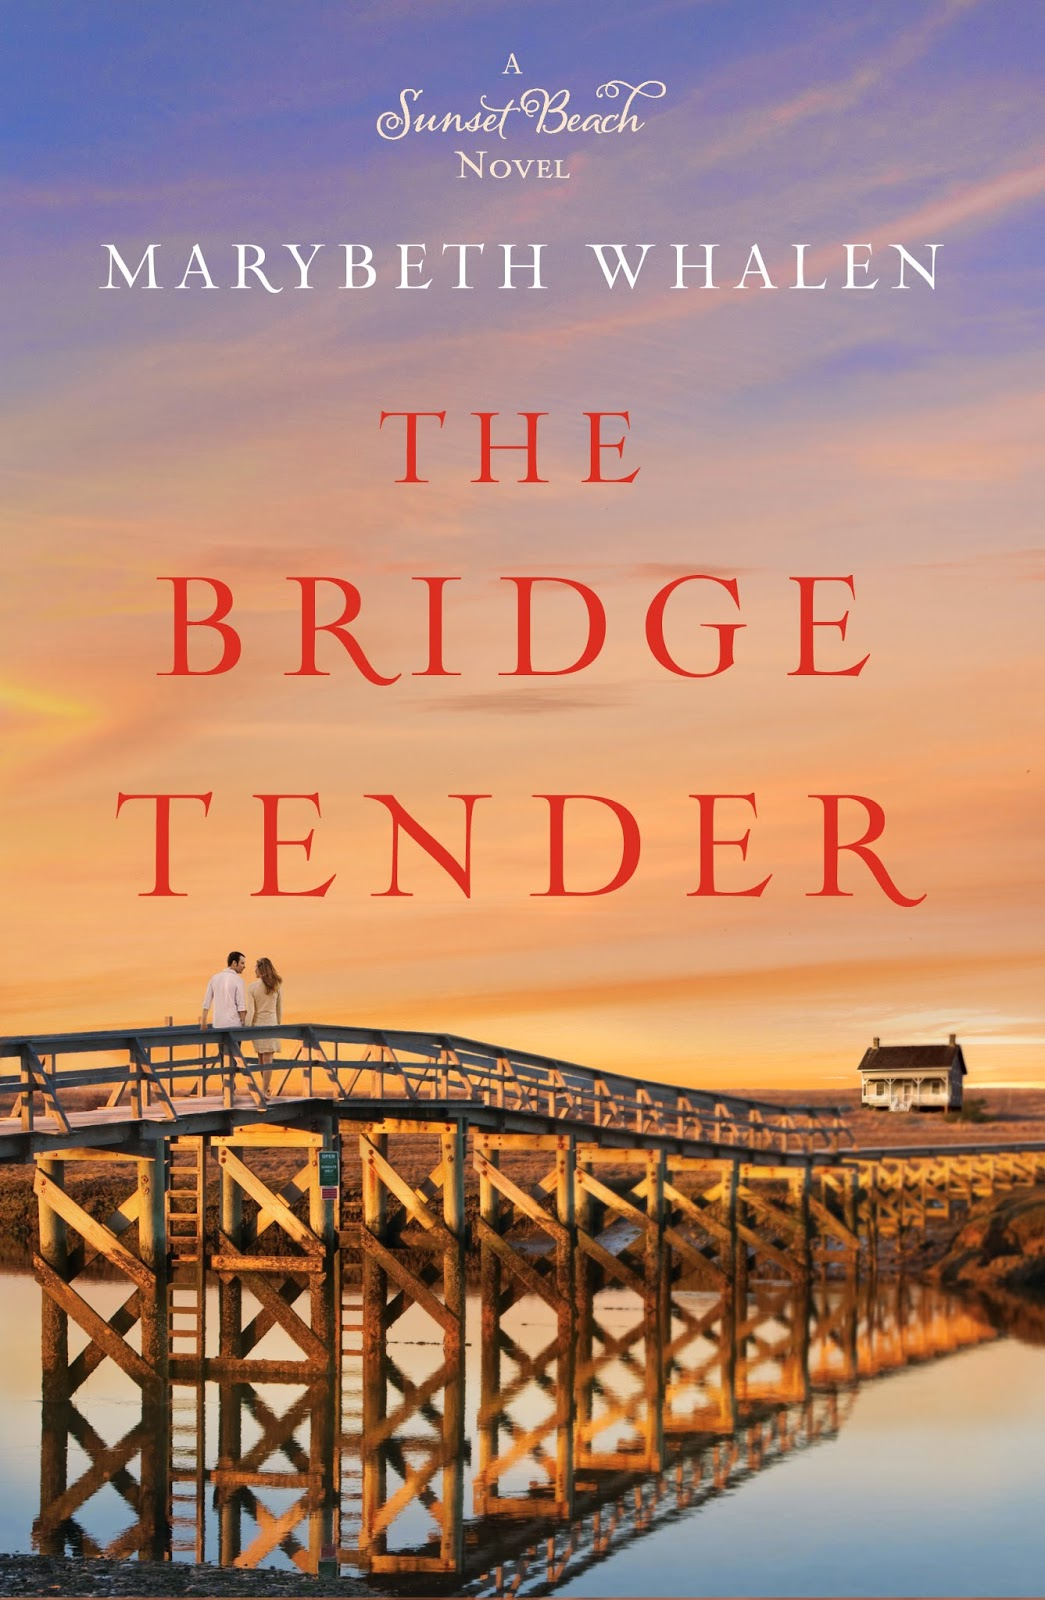 http://www.shereads.org/books/recommended-reads-bridge-tender-marybeth-whalen/